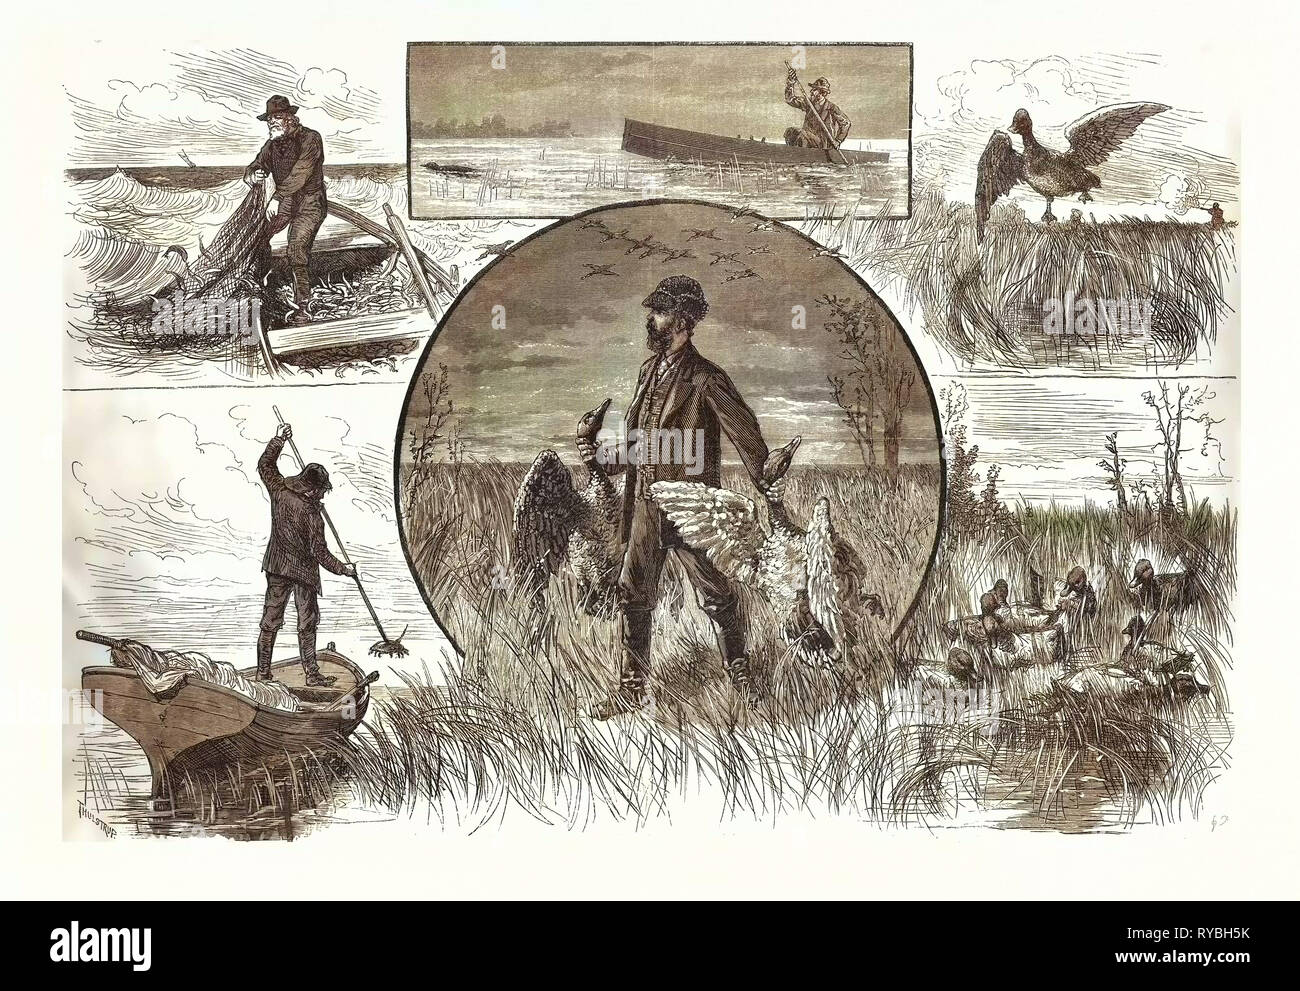 Cruelties Practised on Fish and Fowl, US, USA, America, United States, American, Engraving 1880 - Stock Image